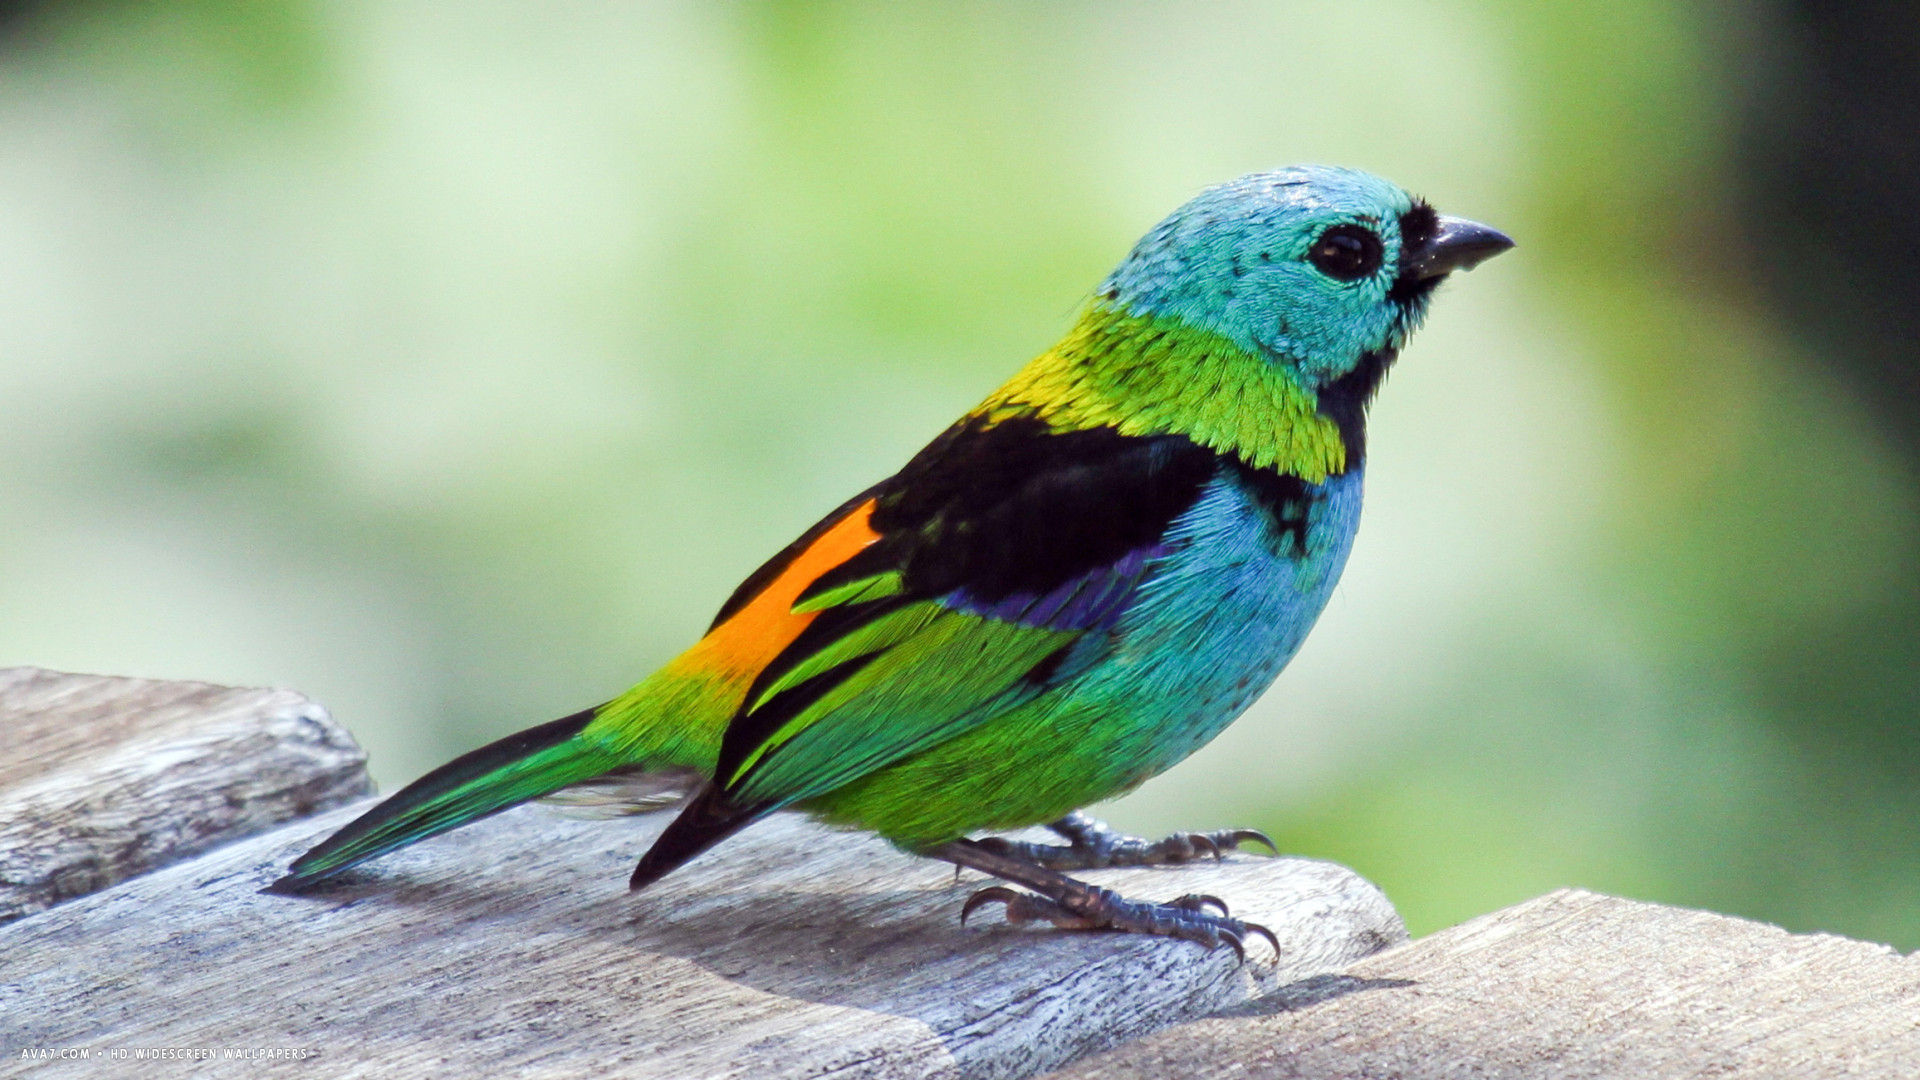 Tanager Colorful Bird Hd Widescreen Wallpaper Birds Backgrounds